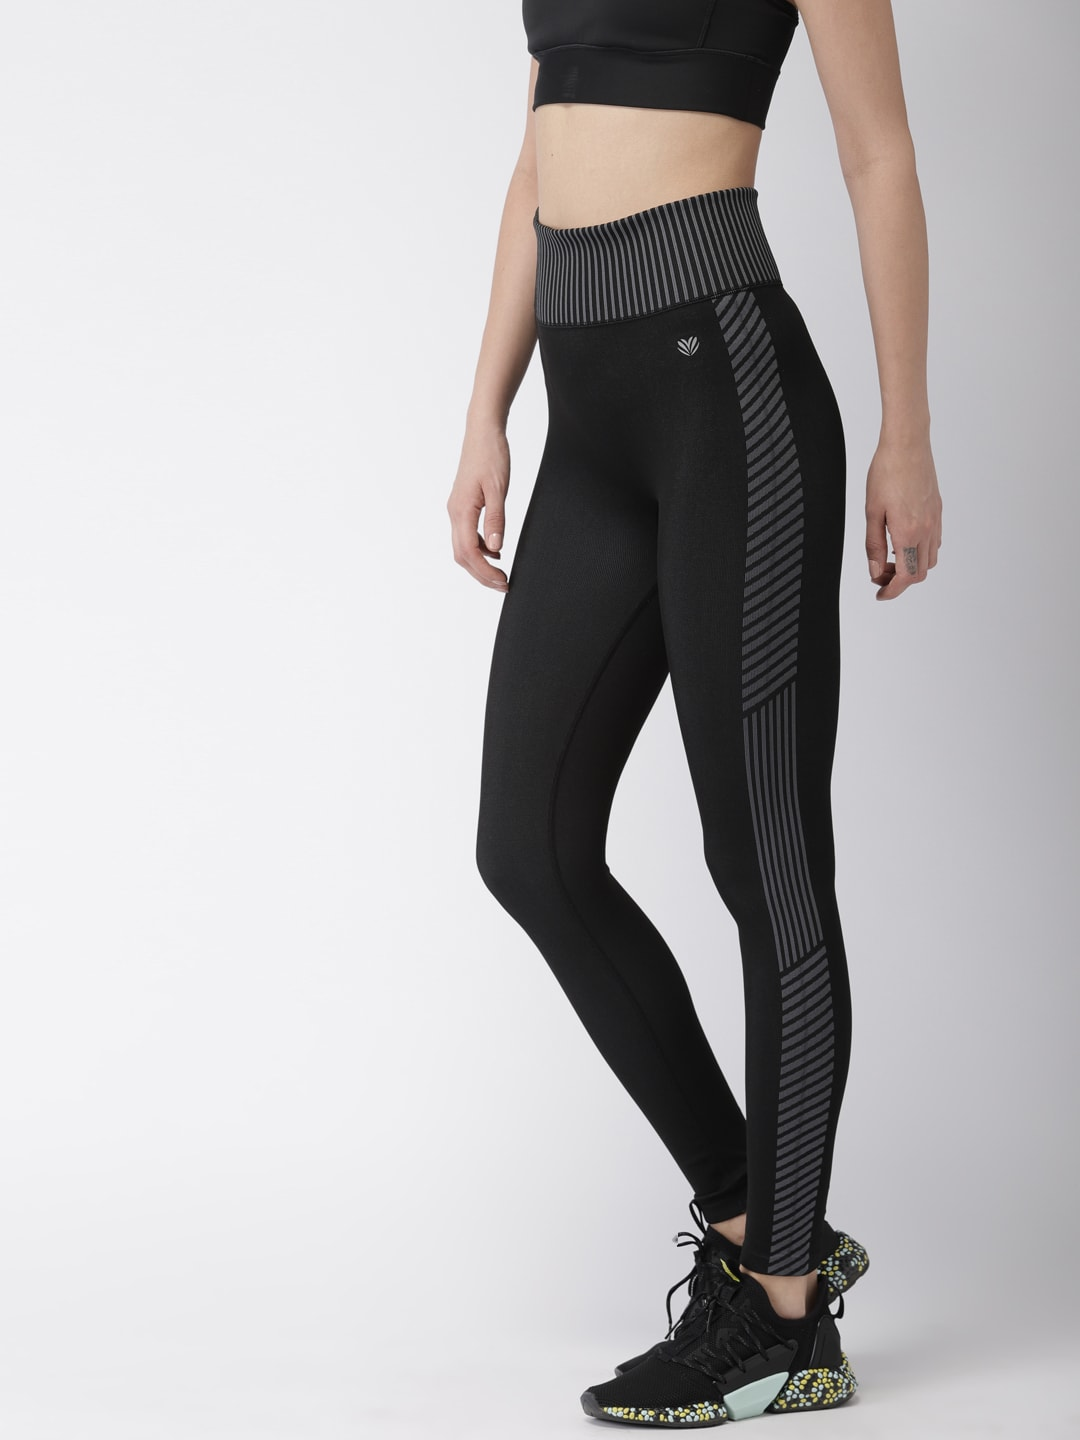 b3ae265bc Tights for Women - Buy Trendy Women Tights Online